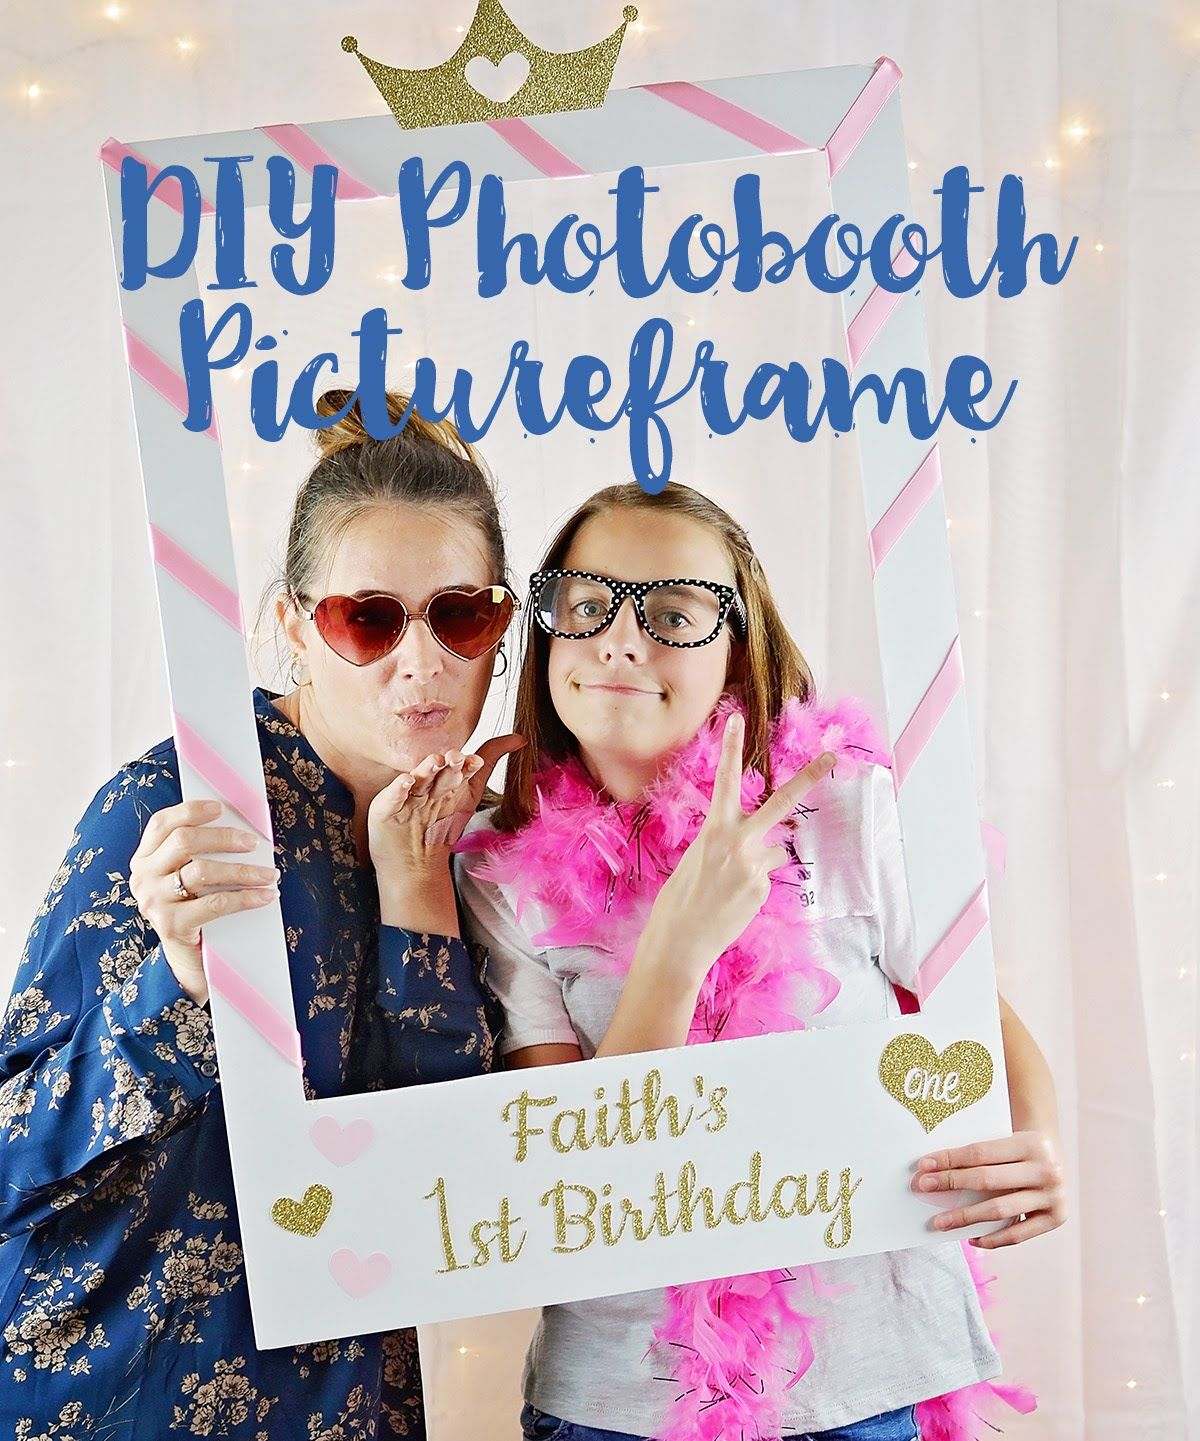 How To Make A Photo Booth Picture Frame Diy